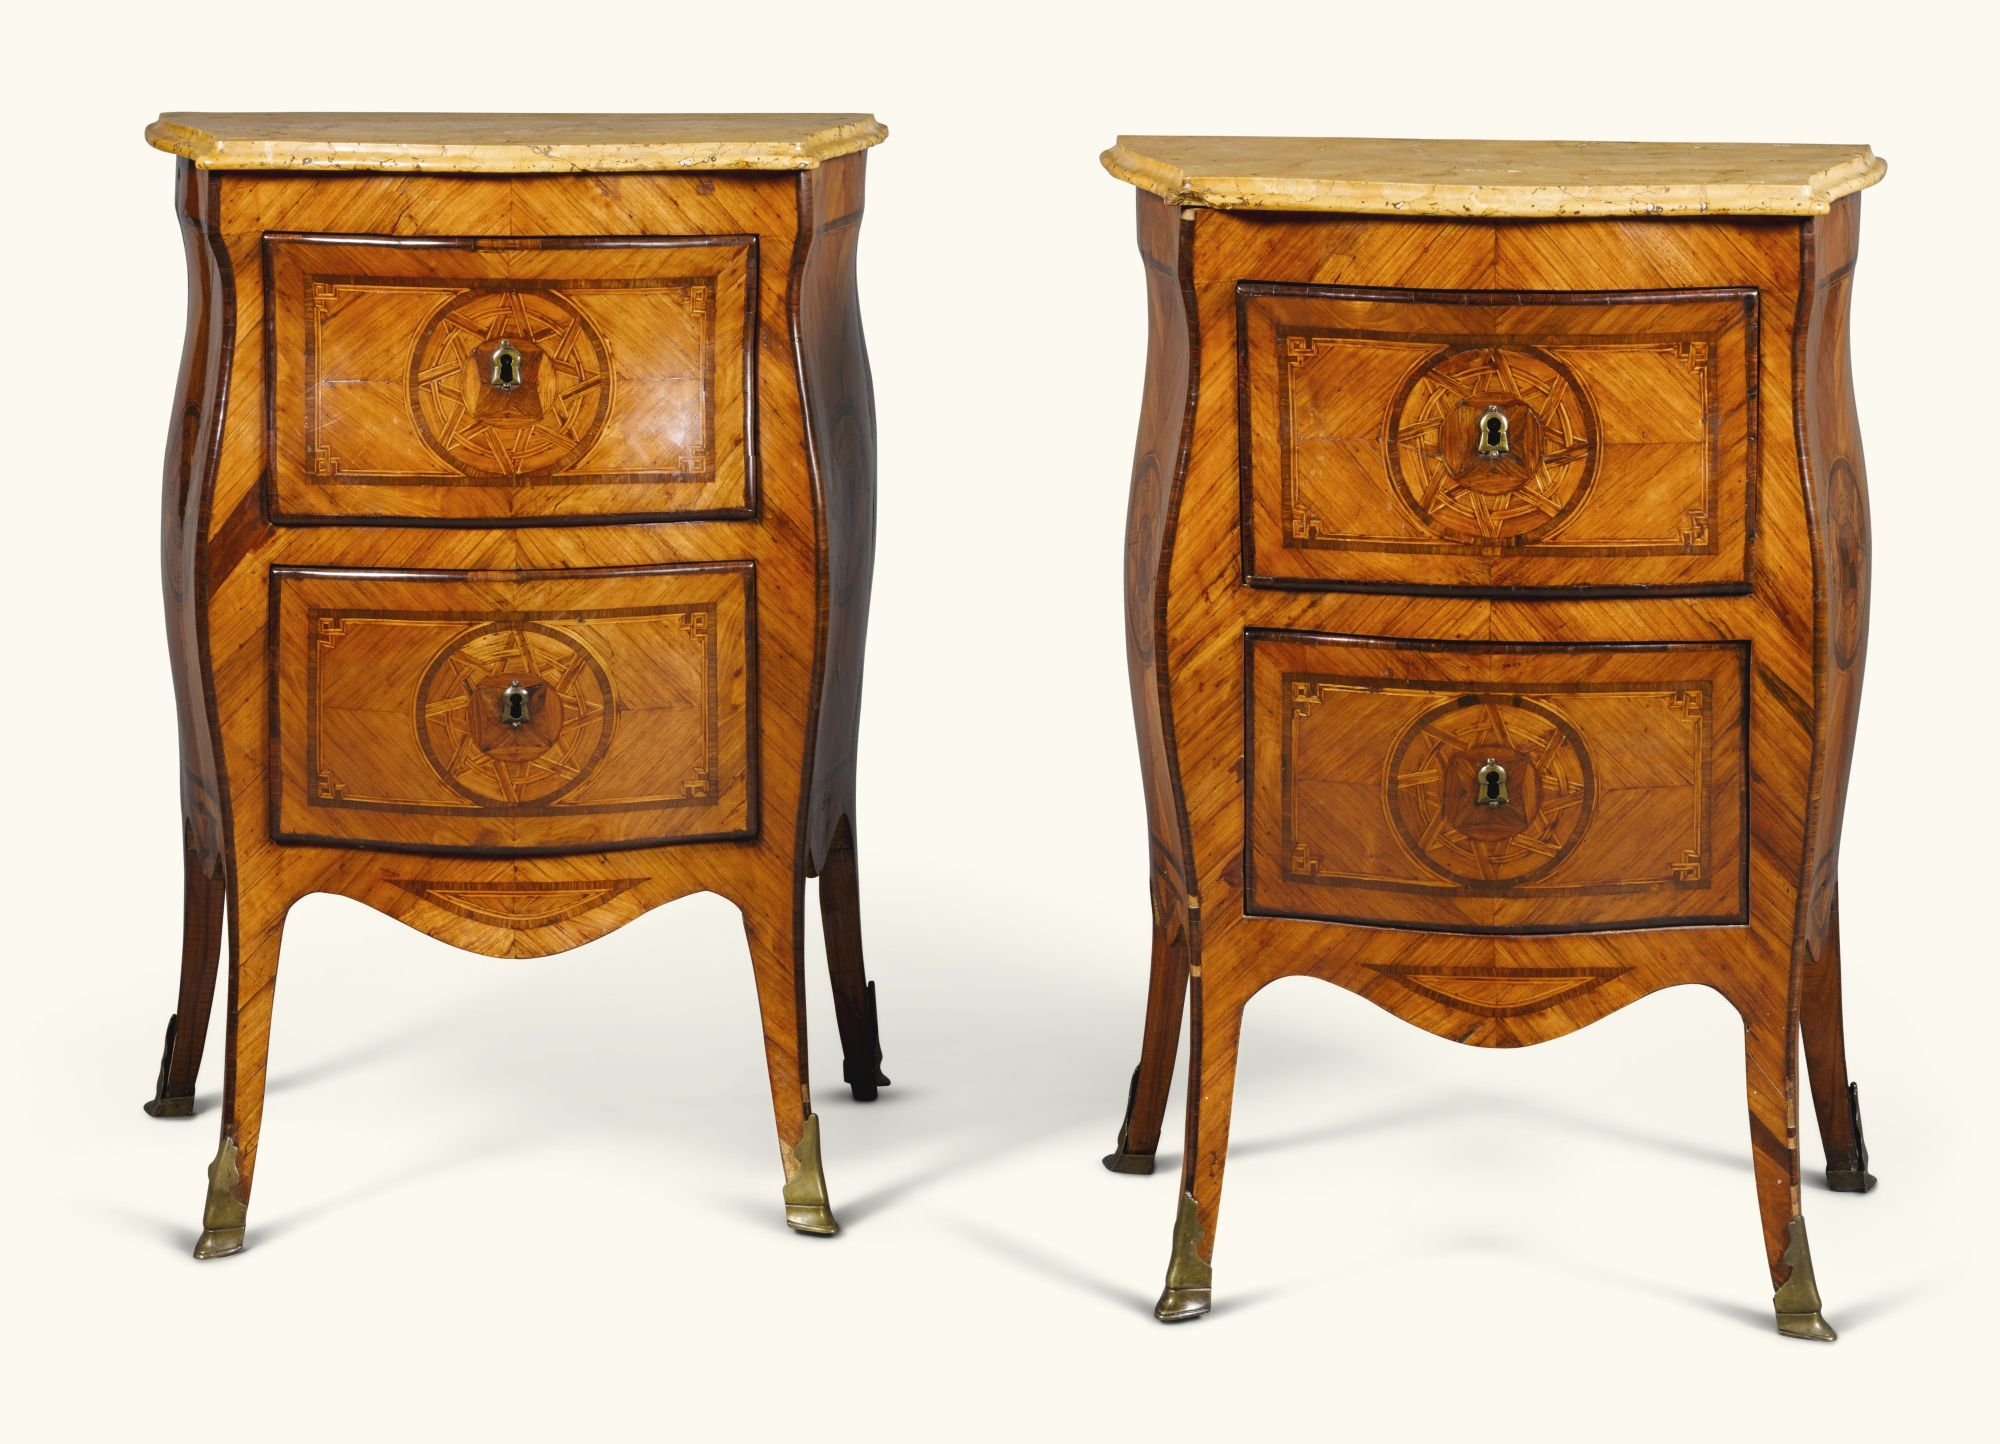 c1760 A pair of small Italian tulipwood, rosewood and